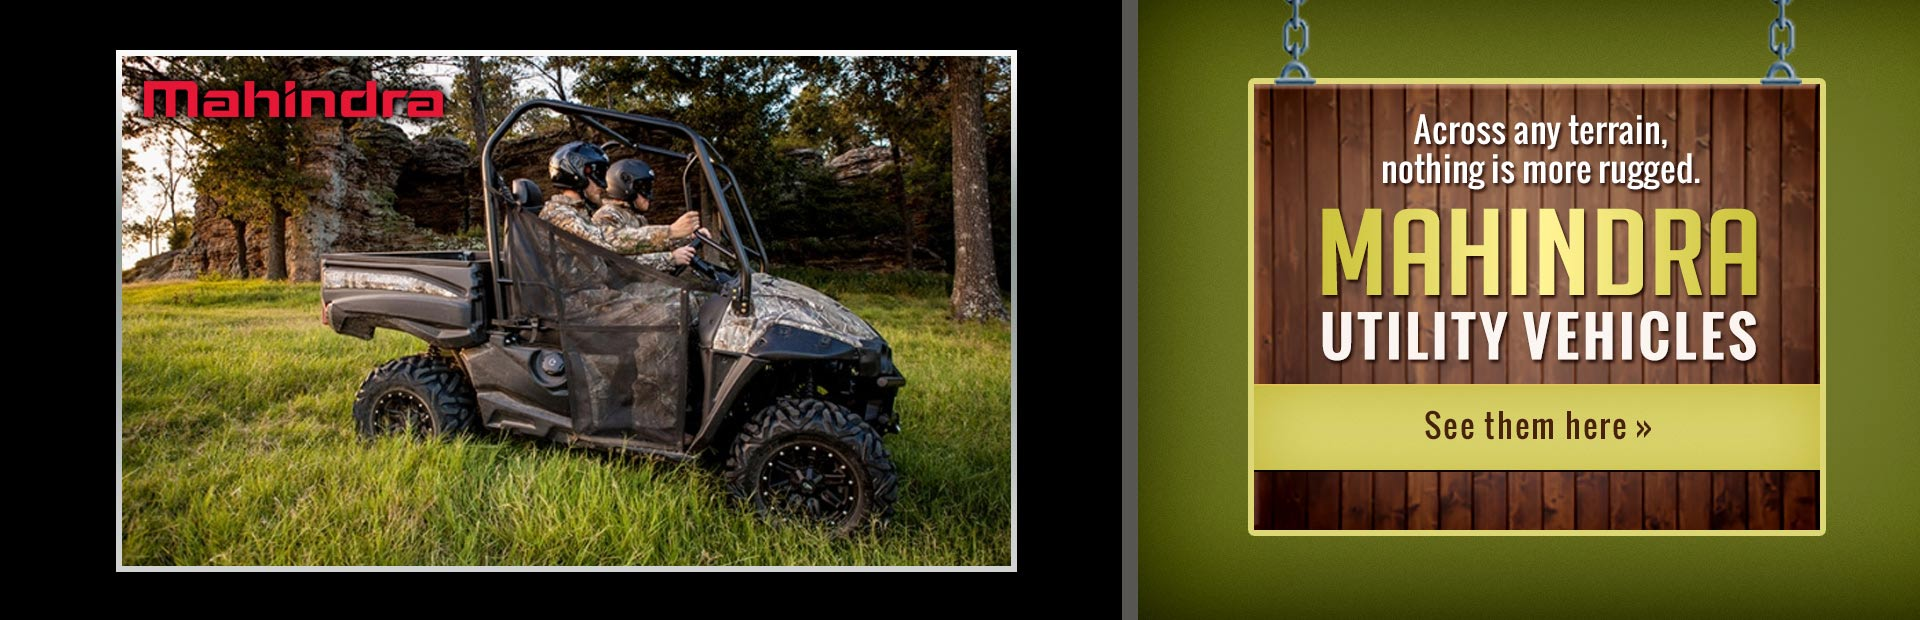 Across any terrain, nothing is more rugged than Mahindra utility vehicles. Click here to view our se